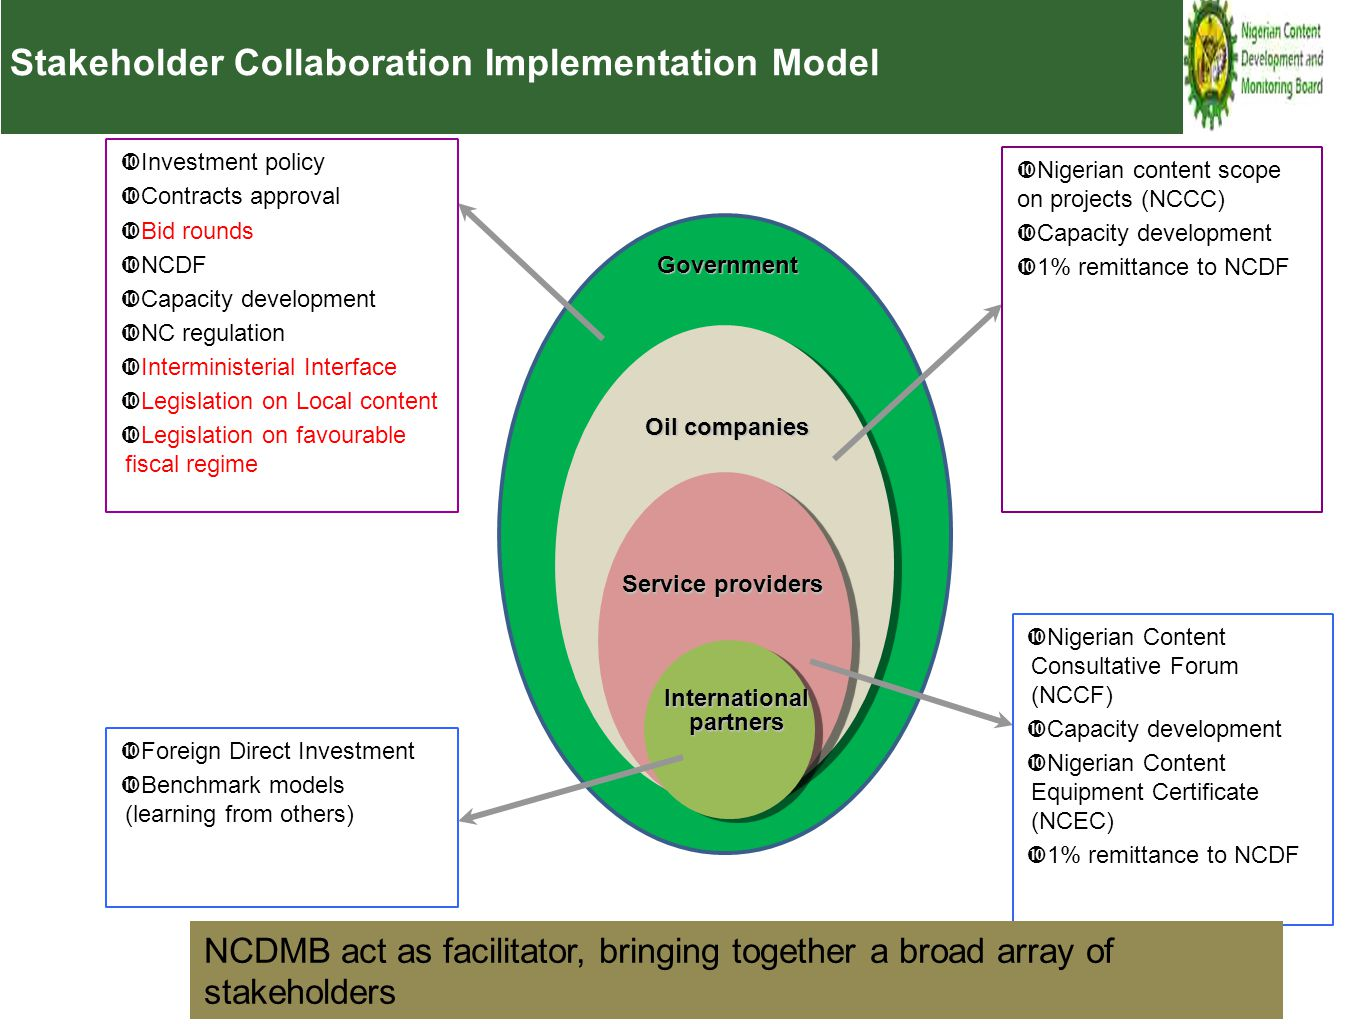 Stakeholder Collaboration Implementation Model Government Oil companies Service providers  Investment policy  Contracts approval  Bid rounds  NCDF  Capacity development  NC regulation  Interministerial Interface  Legislation on Local content  Legislation on favourable fiscal regime  Nigerian content scope on projects (NCCC)  Capacity development  1% remittance to NCDF  Nigerian Content Consultative Forum (NCCF)  Capacity development  Nigerian Content Equipment Certificate (NCEC)  1% remittance to NCDF  Foreign Direct Investment  Benchmark models (learning from others) International partners NCDMB act as facilitator, bringing together a broad array of stakeholders